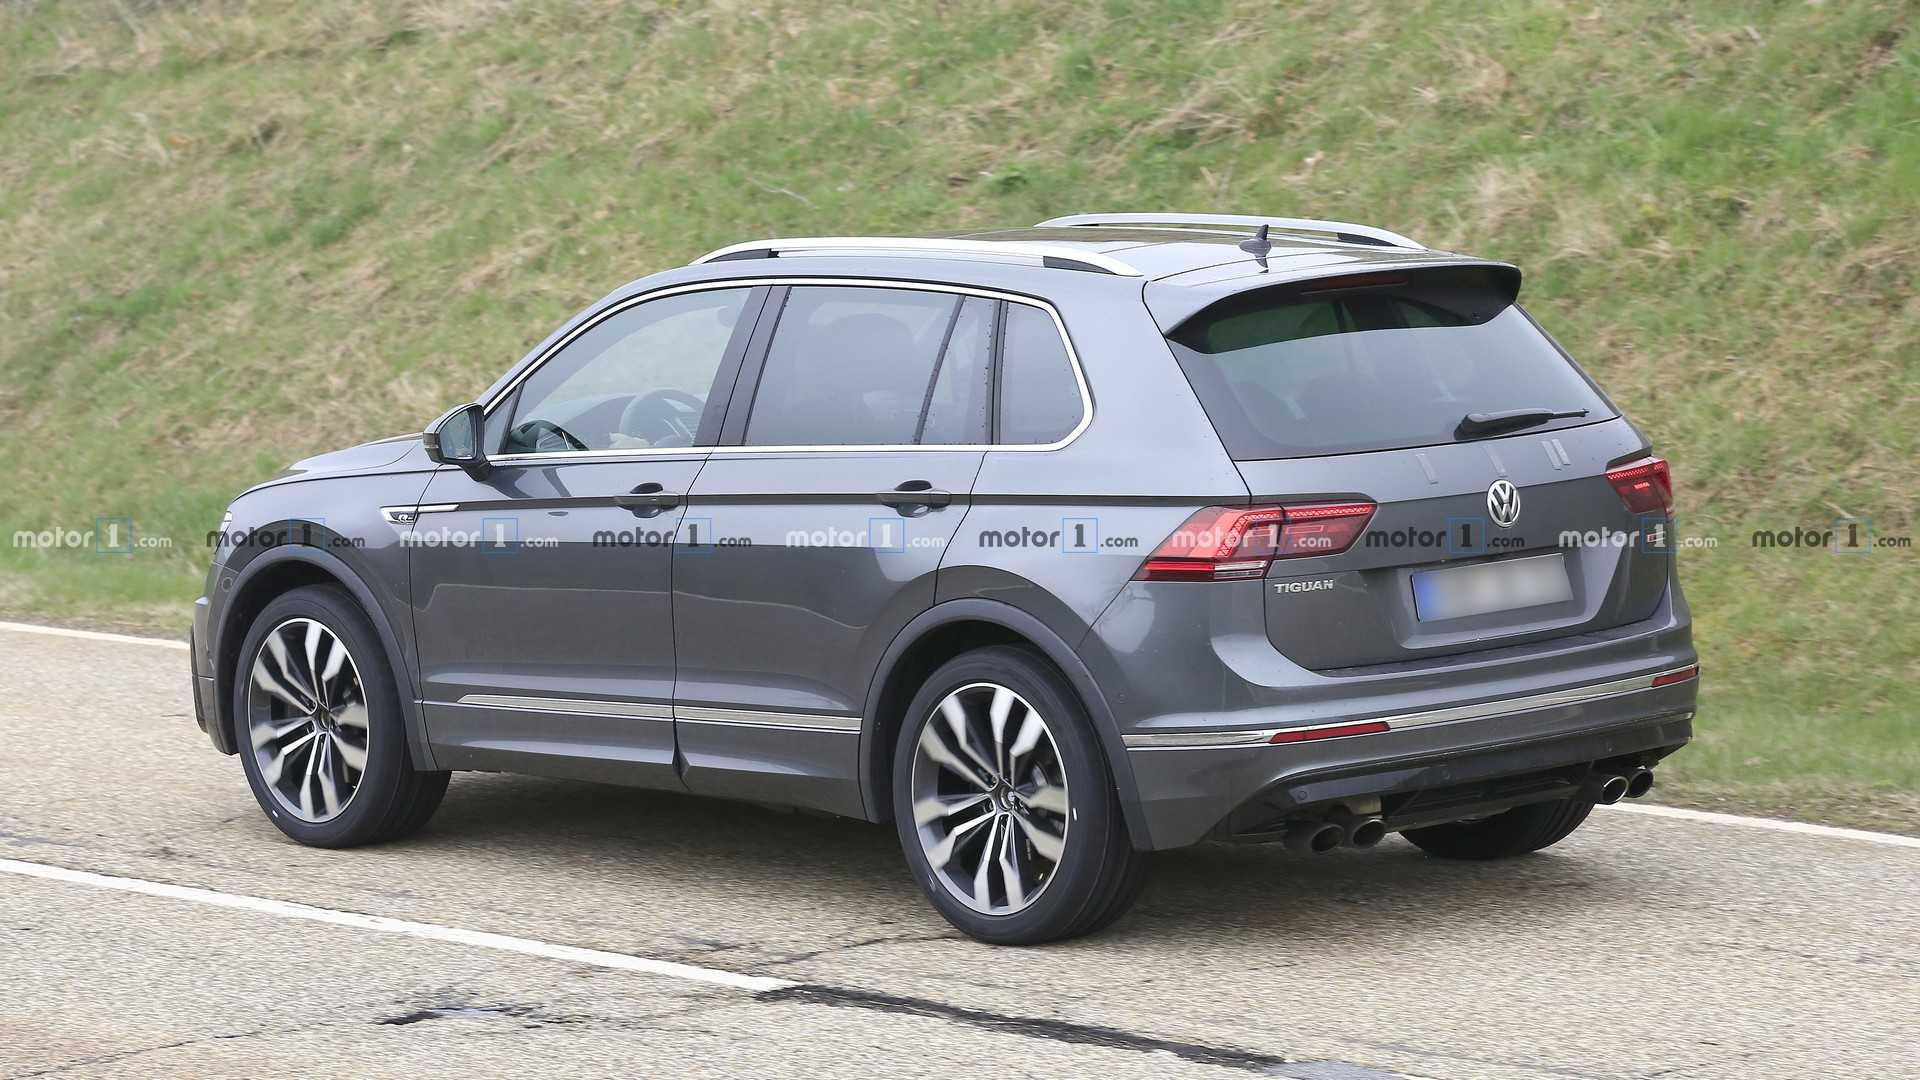 Vw Tiguan Facelift And Tiguan R Concept Due In 2020 intended for 2021 Vw Tiguan Highline Specs, Exterior Concept, Release Date